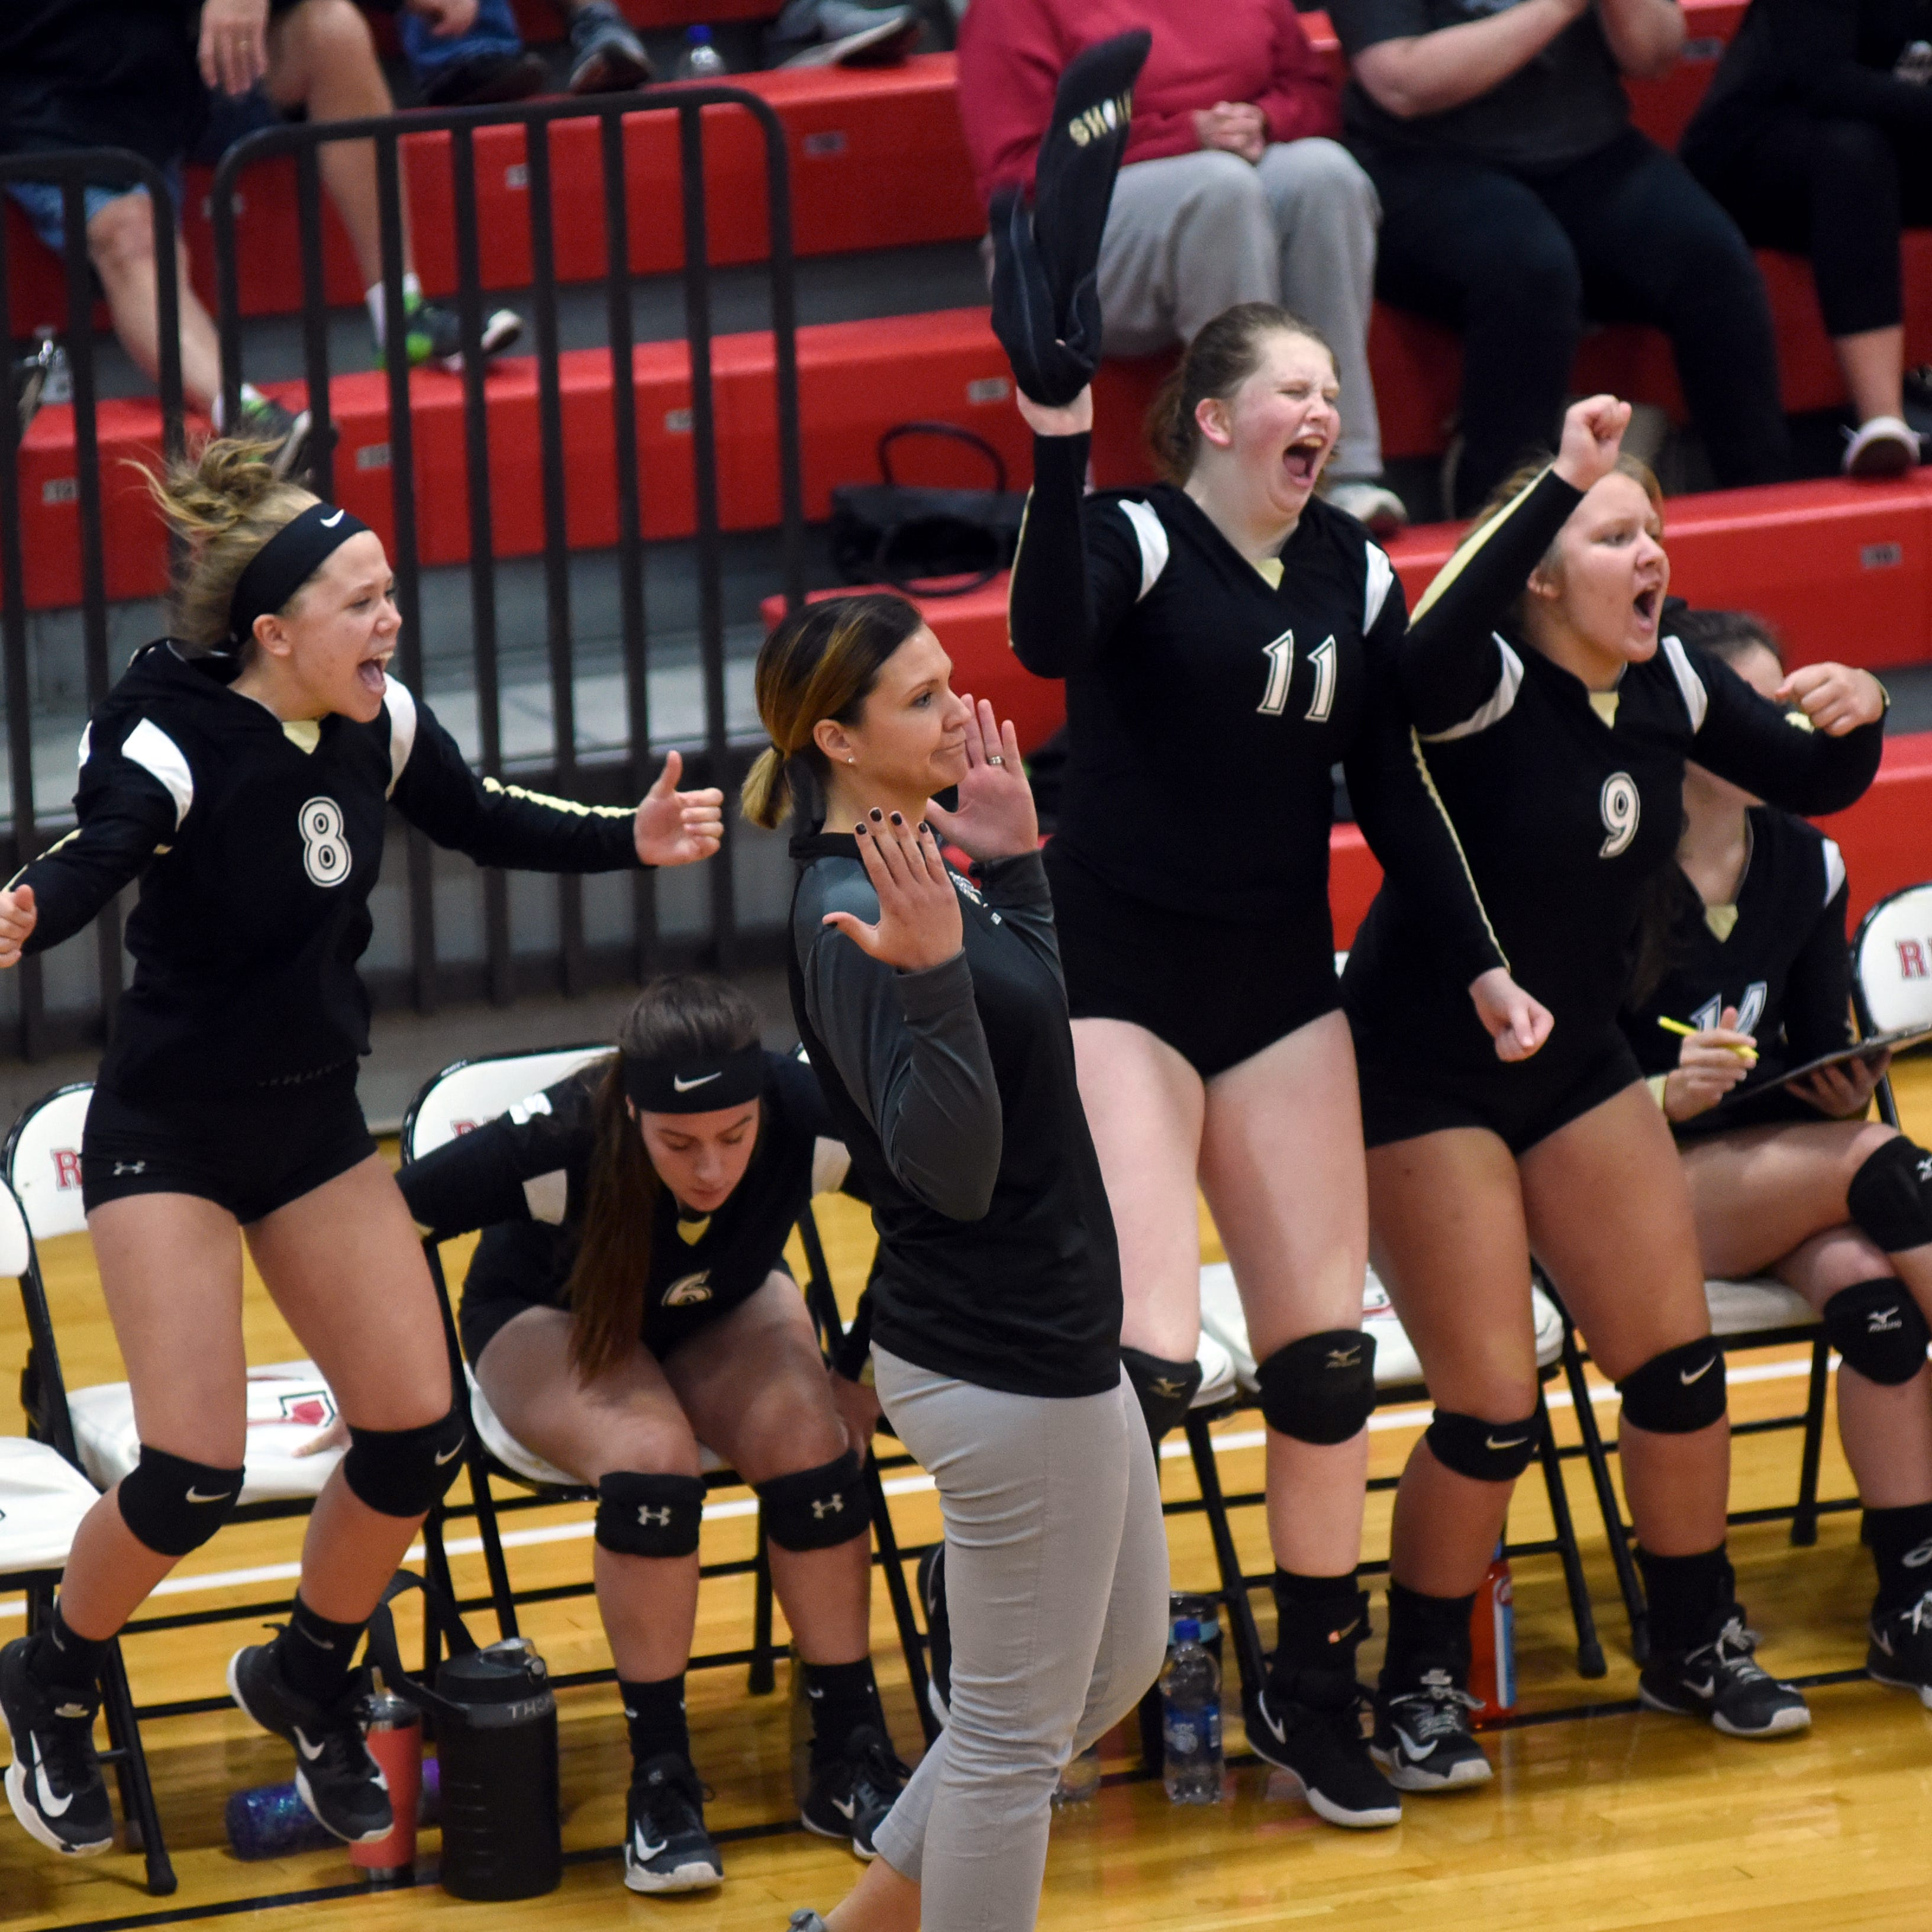 Volleyball: River View gets 'huge' win before tourney